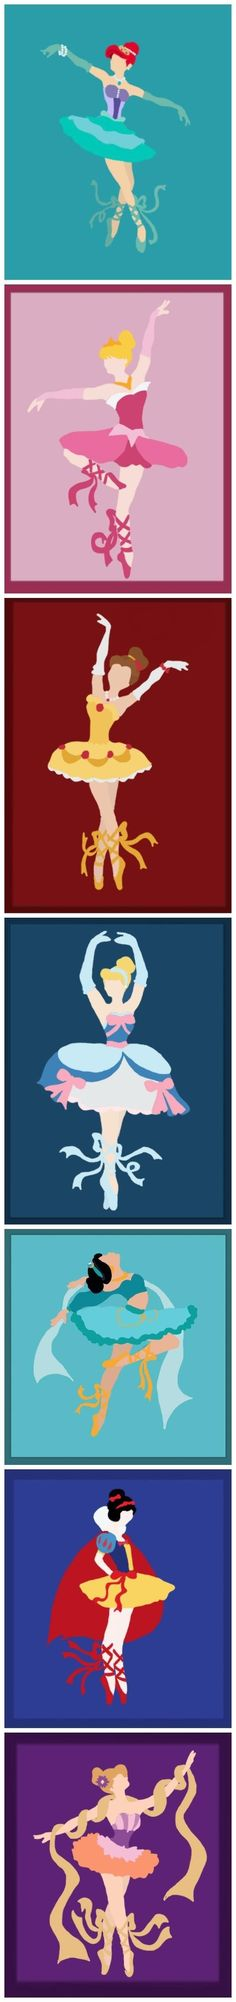 Disney princesses as ballerinas! I love this *^* I wish that I could do pointe, but perhaps I could do a Disney ballerina cosplay with basic ballet shoes Disney Pixar, Walt Disney, Disney And Dreamworks, Disney Magic, Disney Art, Baby Disney Characters, Disney Girls, Cute Disney, Funny Disney